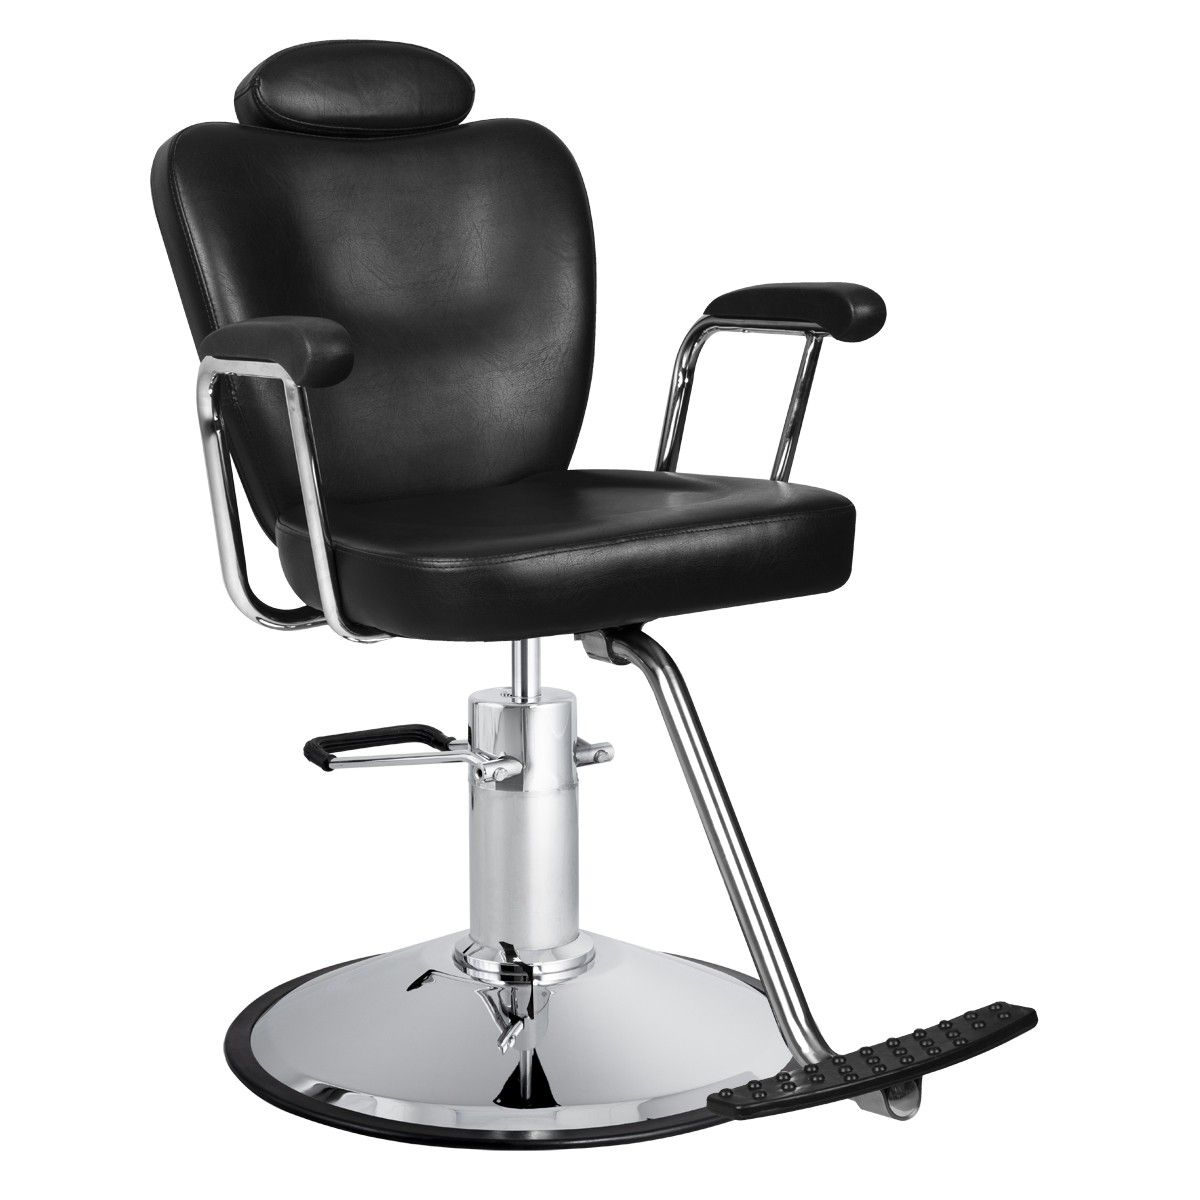 Marvelous Milano All Purpose Chair In Black With Black Armrests Bralicious Painted Fabric Chair Ideas Braliciousco